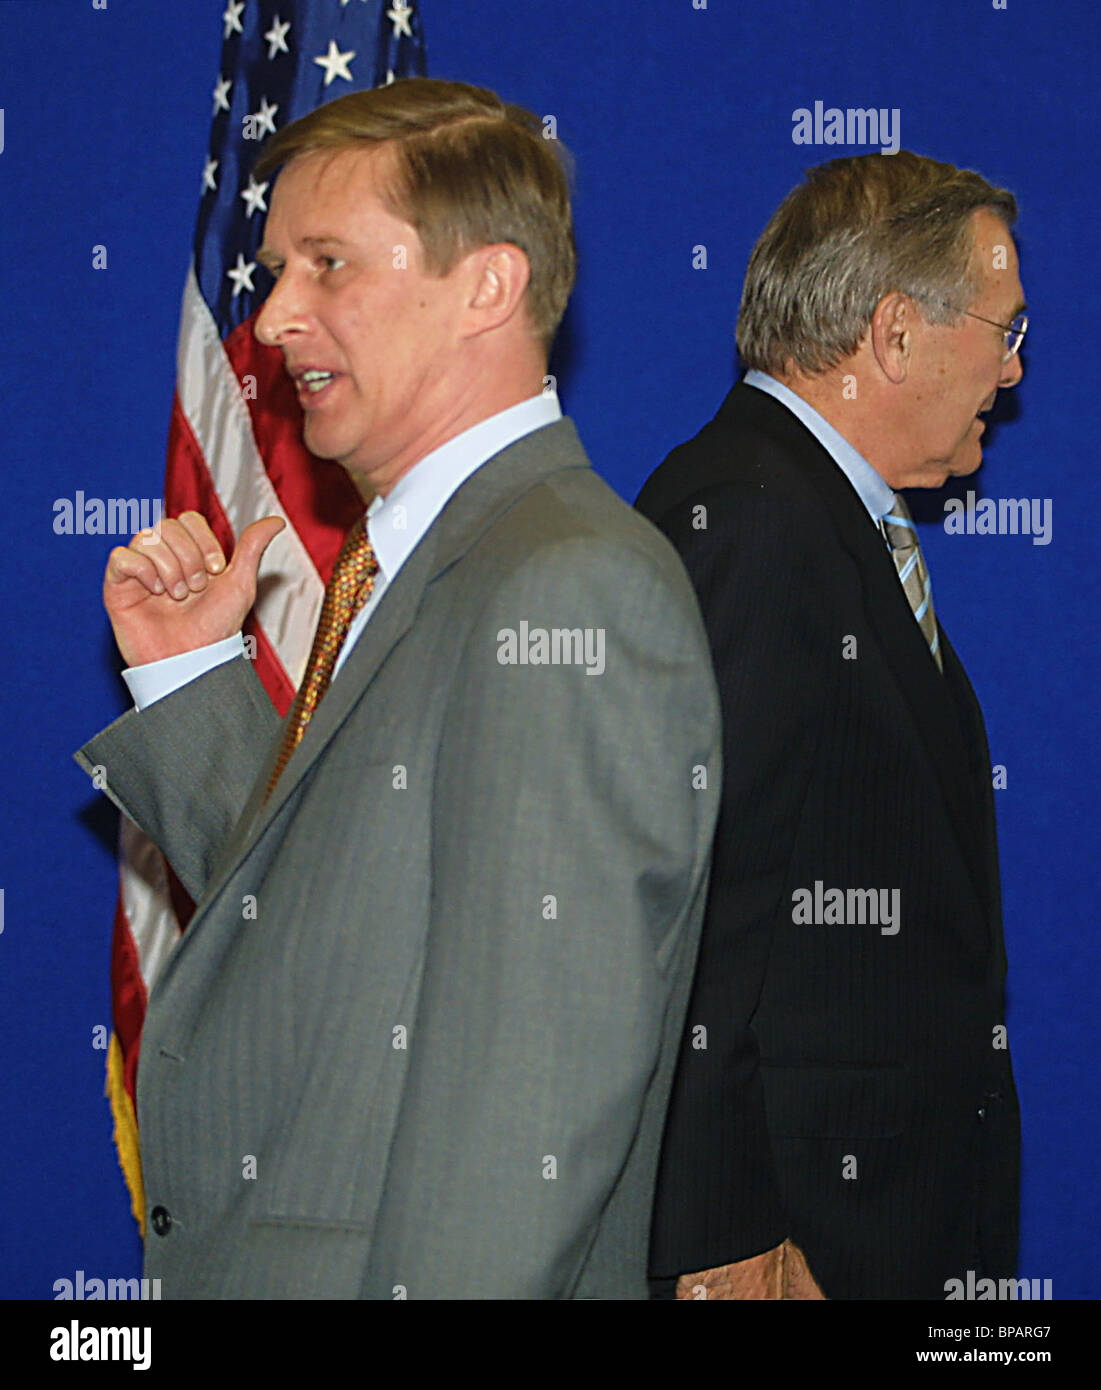 Meeting of Russian Defense Minister Sergei Ivanov with US Defense Secretary Donald Rumsfeld at Moscow's airport - Stock Image